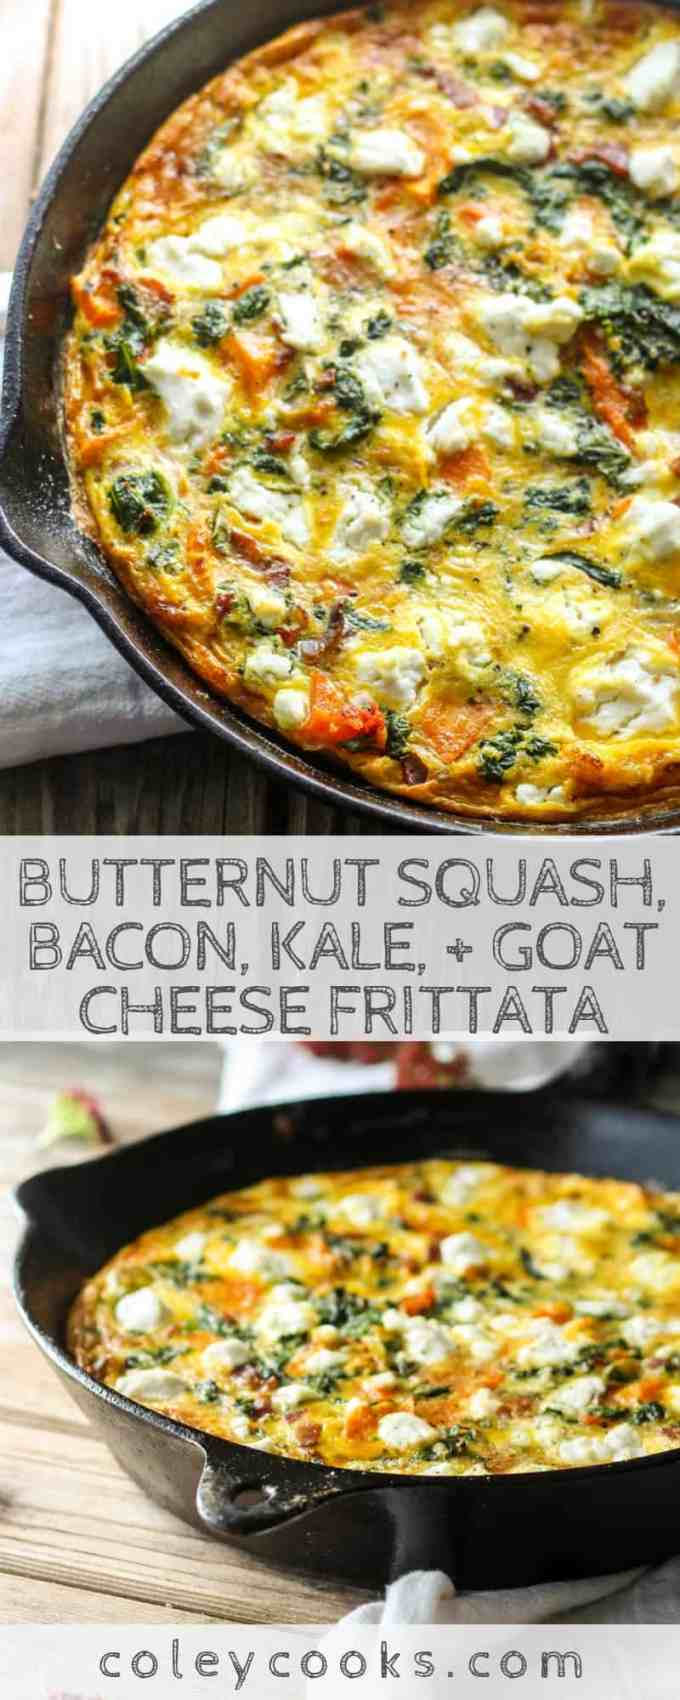 Butternut Squash, Bacon, Kale, + Goat Cheese Frittata   Easy frittata recipe with all the best Fall vegetables. Great for breakfast or brunch! #easy #fall #recipe #brunch #breakfast #eggs #frittata #kale #butternut   ColeyCooks.com